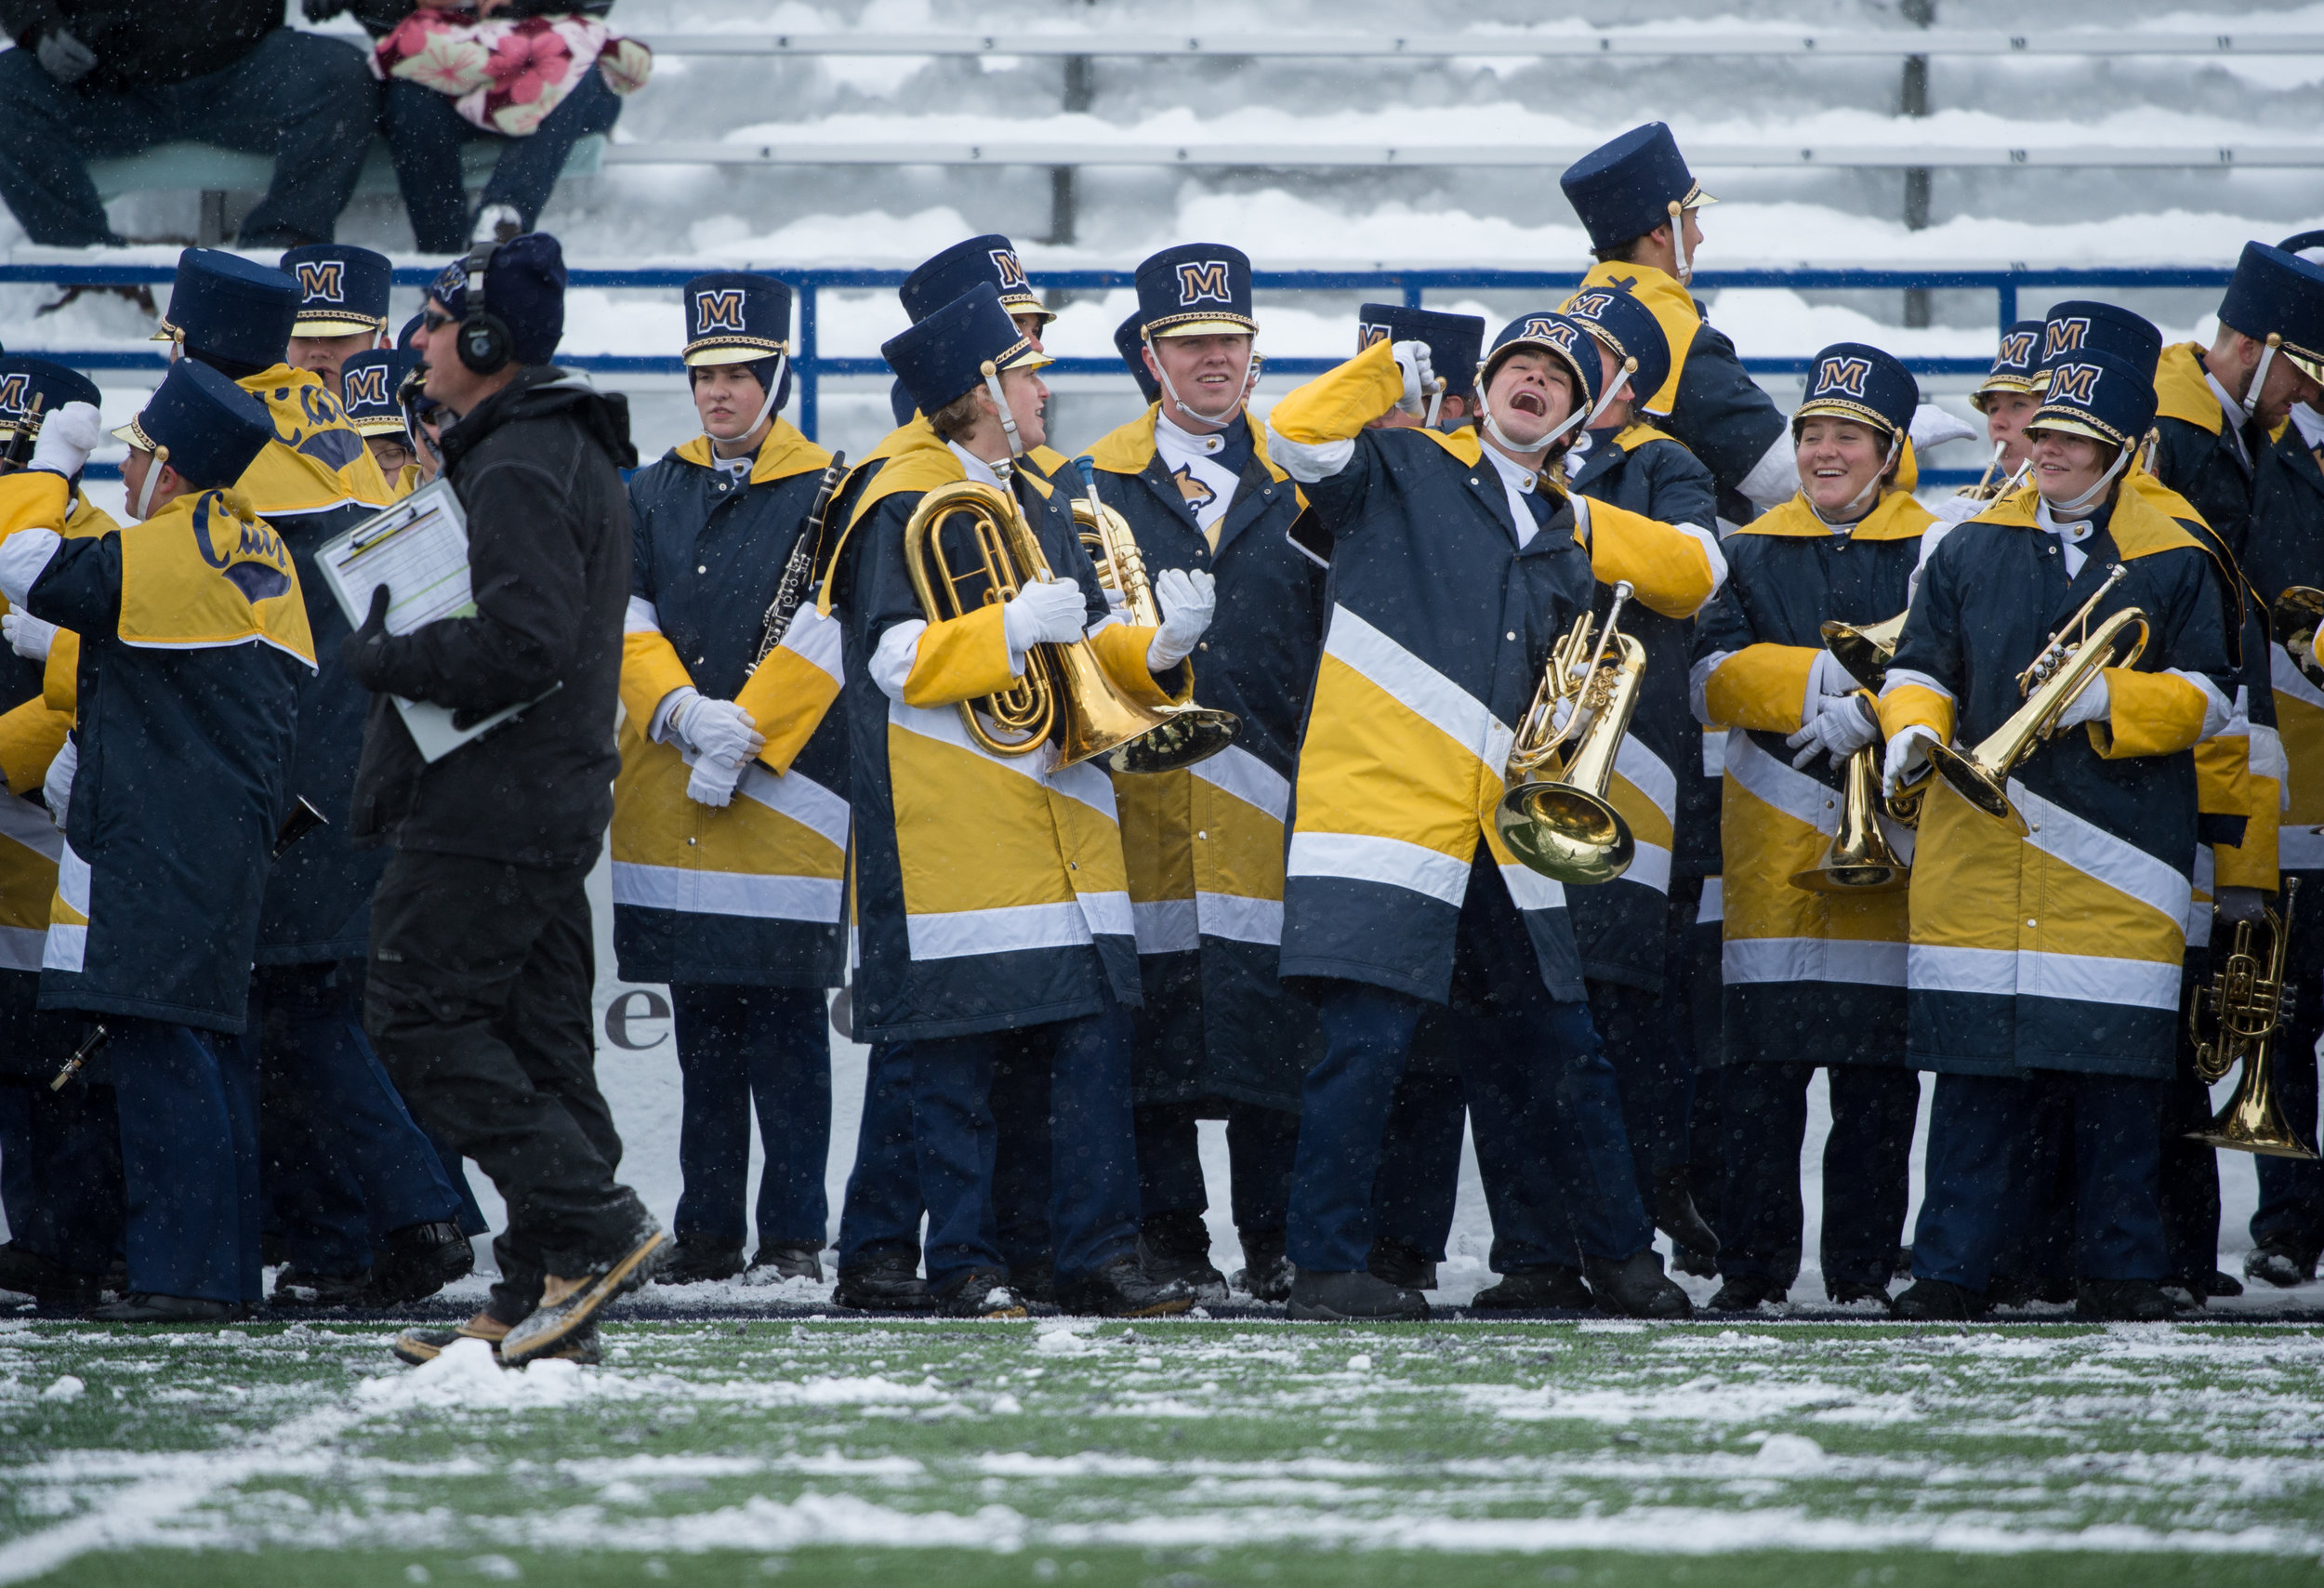 Spirit of the West members dance during pregame prior to their pregame performance during a football game in Bozeman, Mont. Saturday, Nov. 04, 2017.